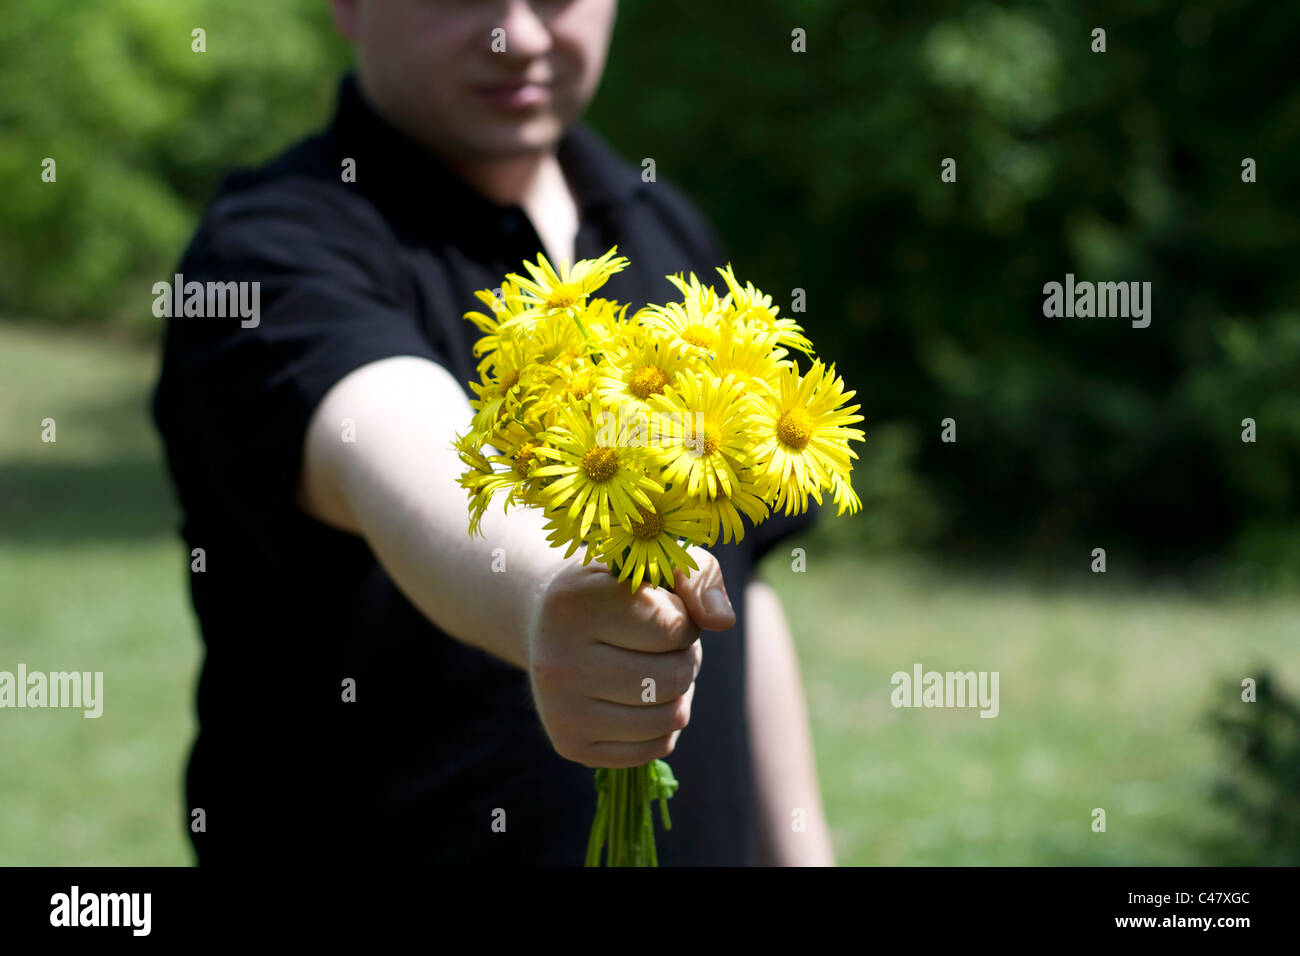 man giving a present with yellow daisy flowers focus on flowers